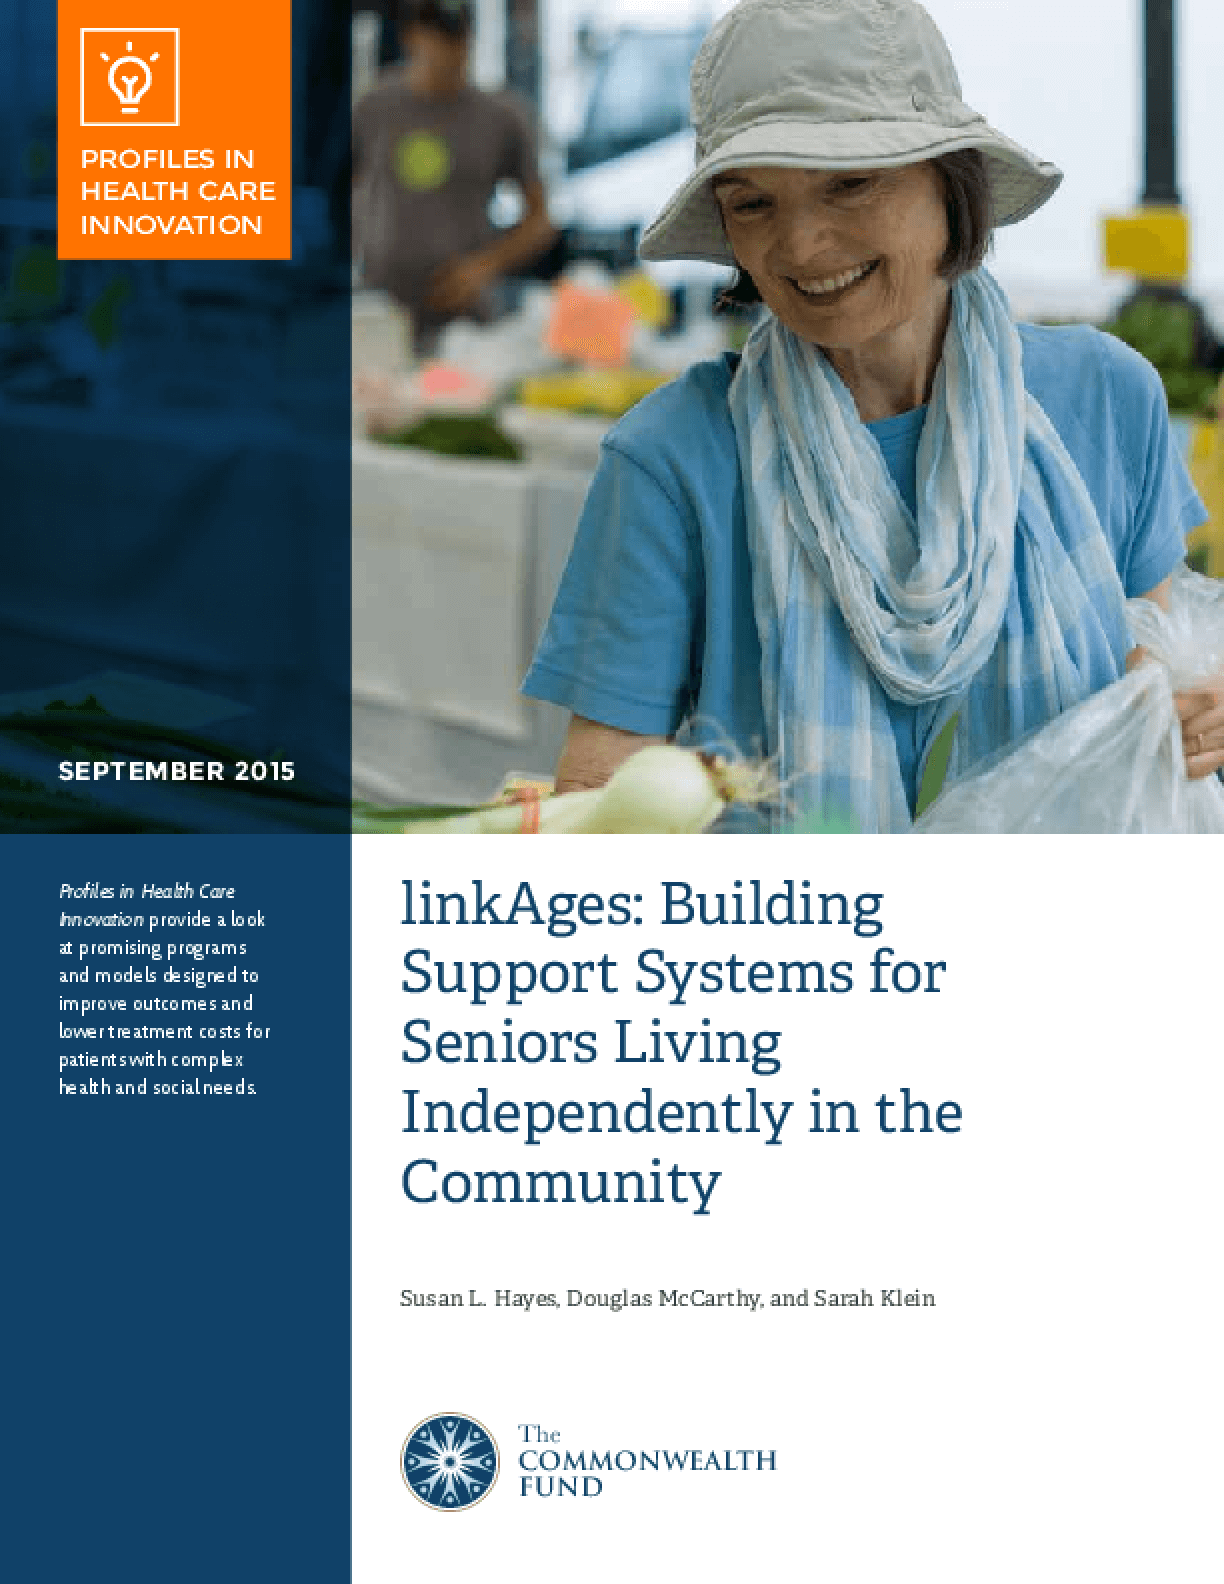 linkAges: Building Support Systems for Seniors Living Independently in the Community